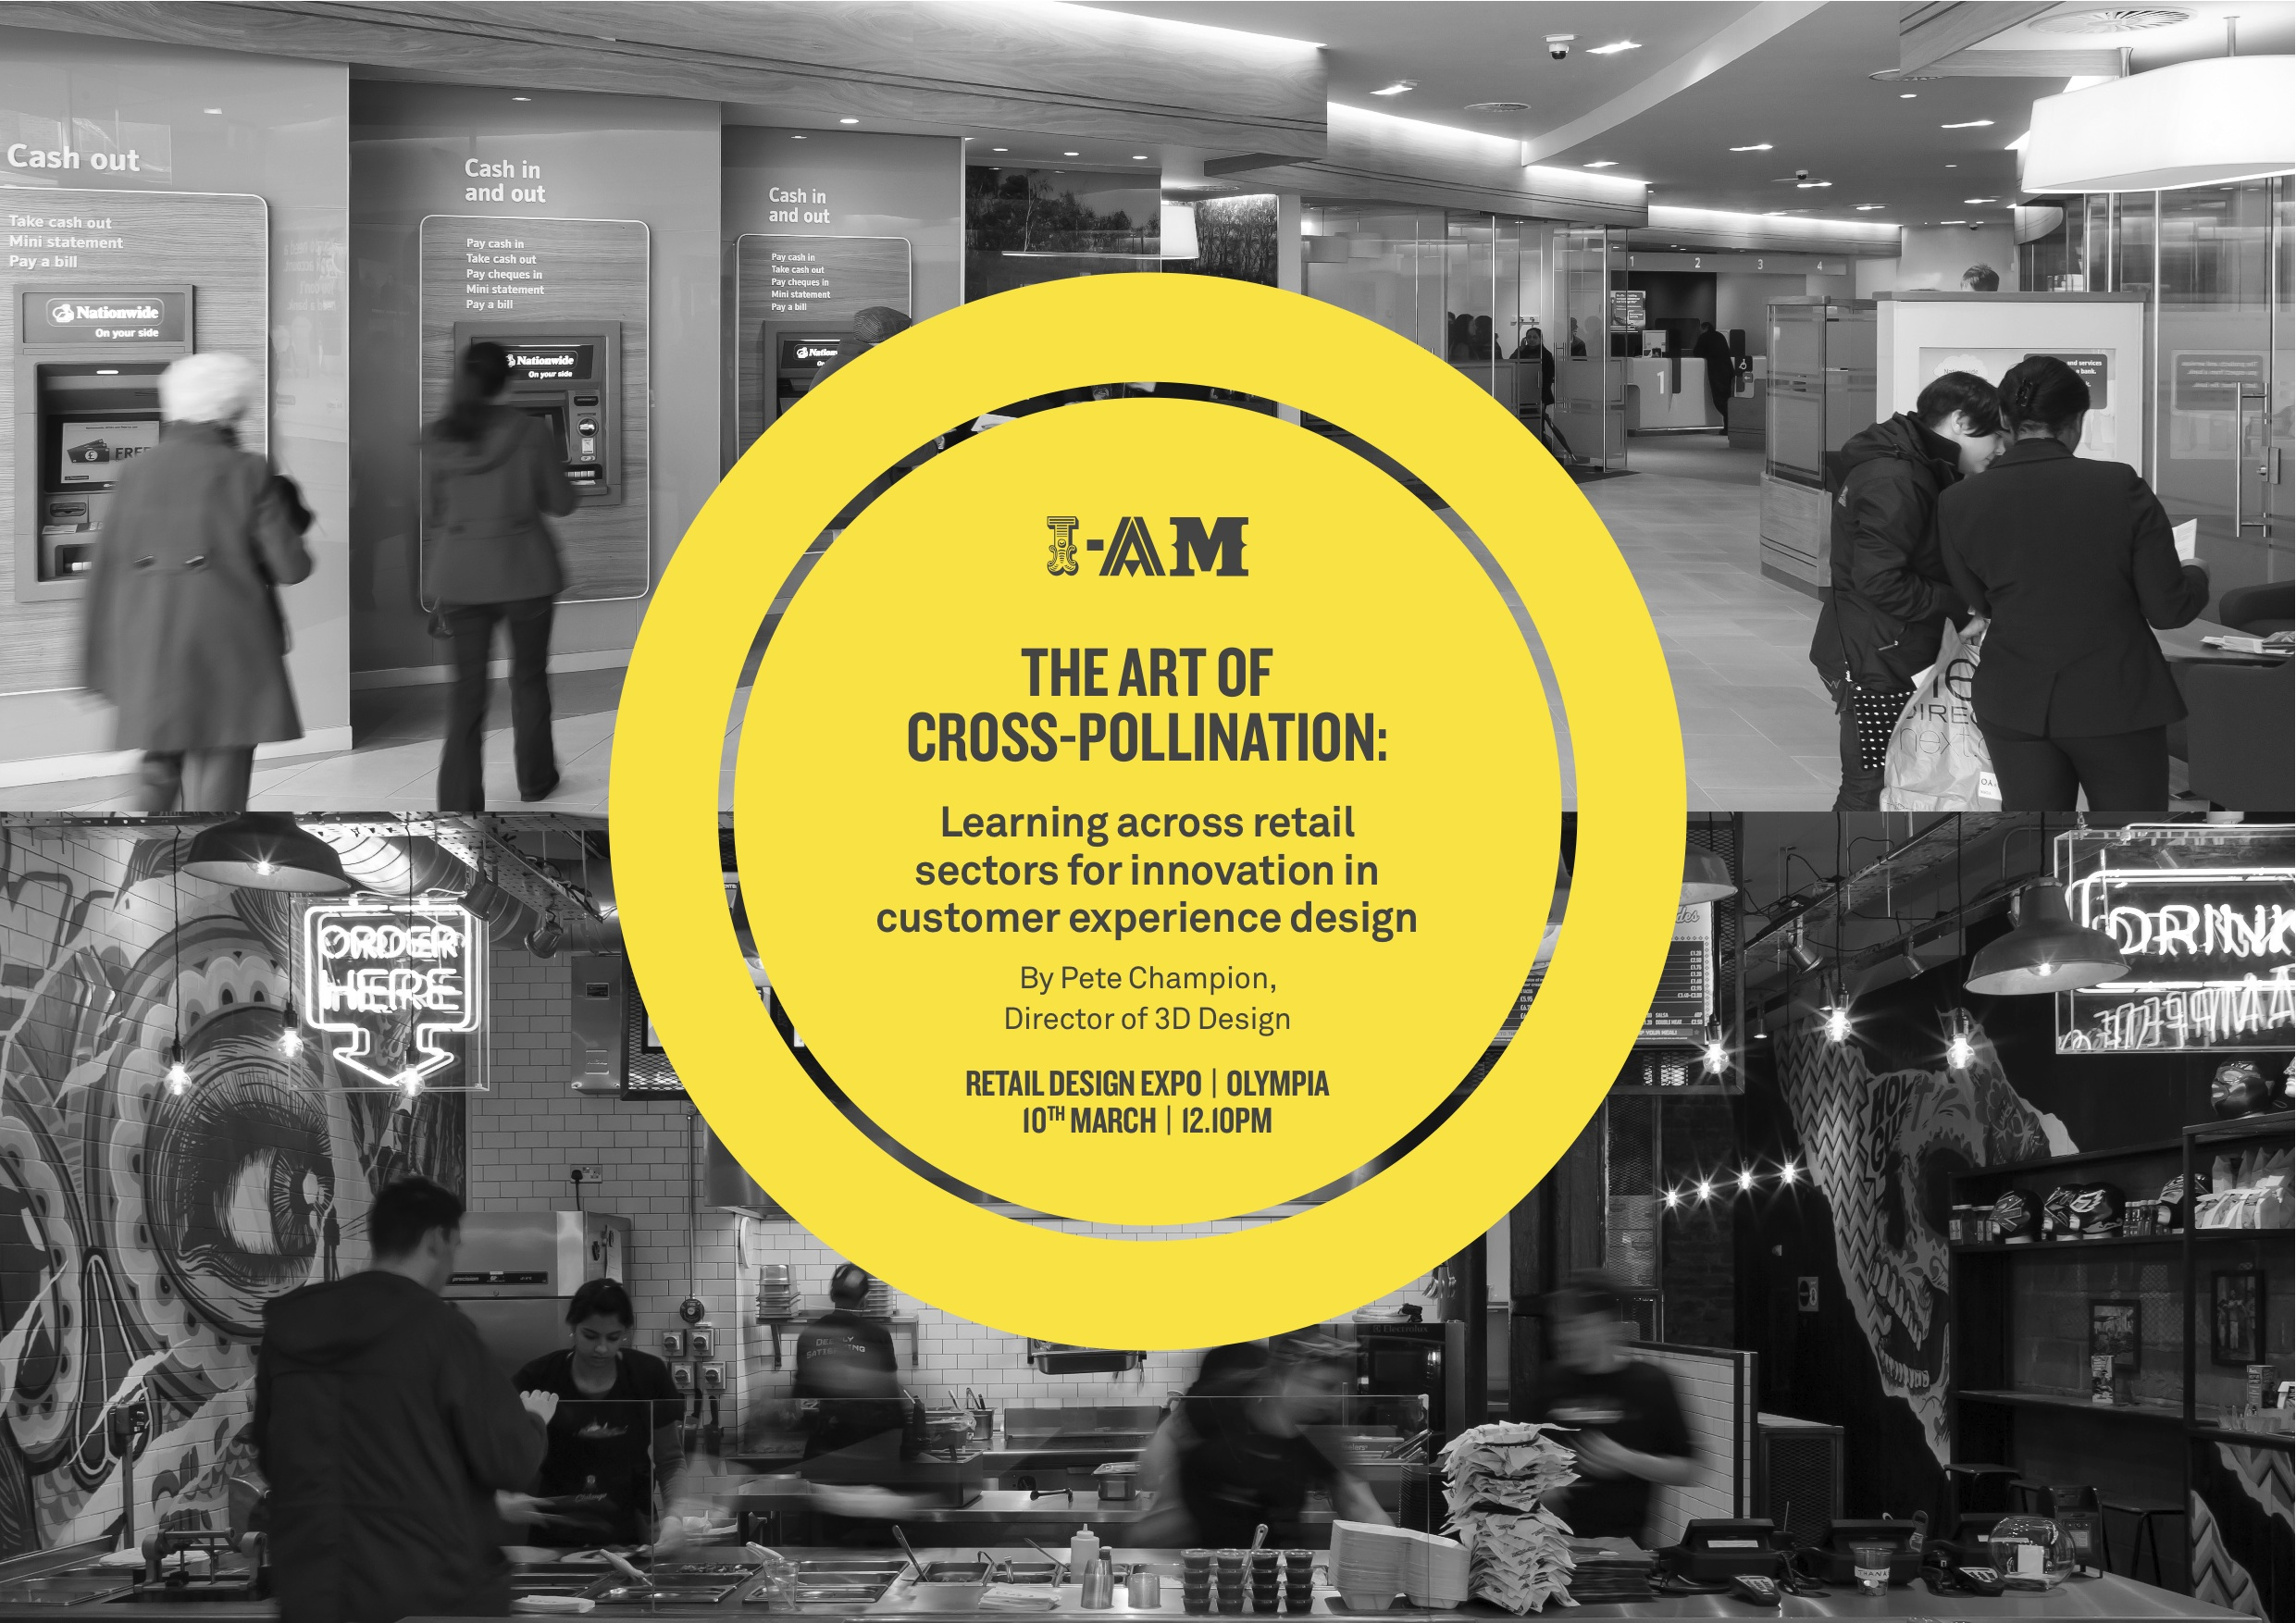 I-AM present at Retail Design Expo